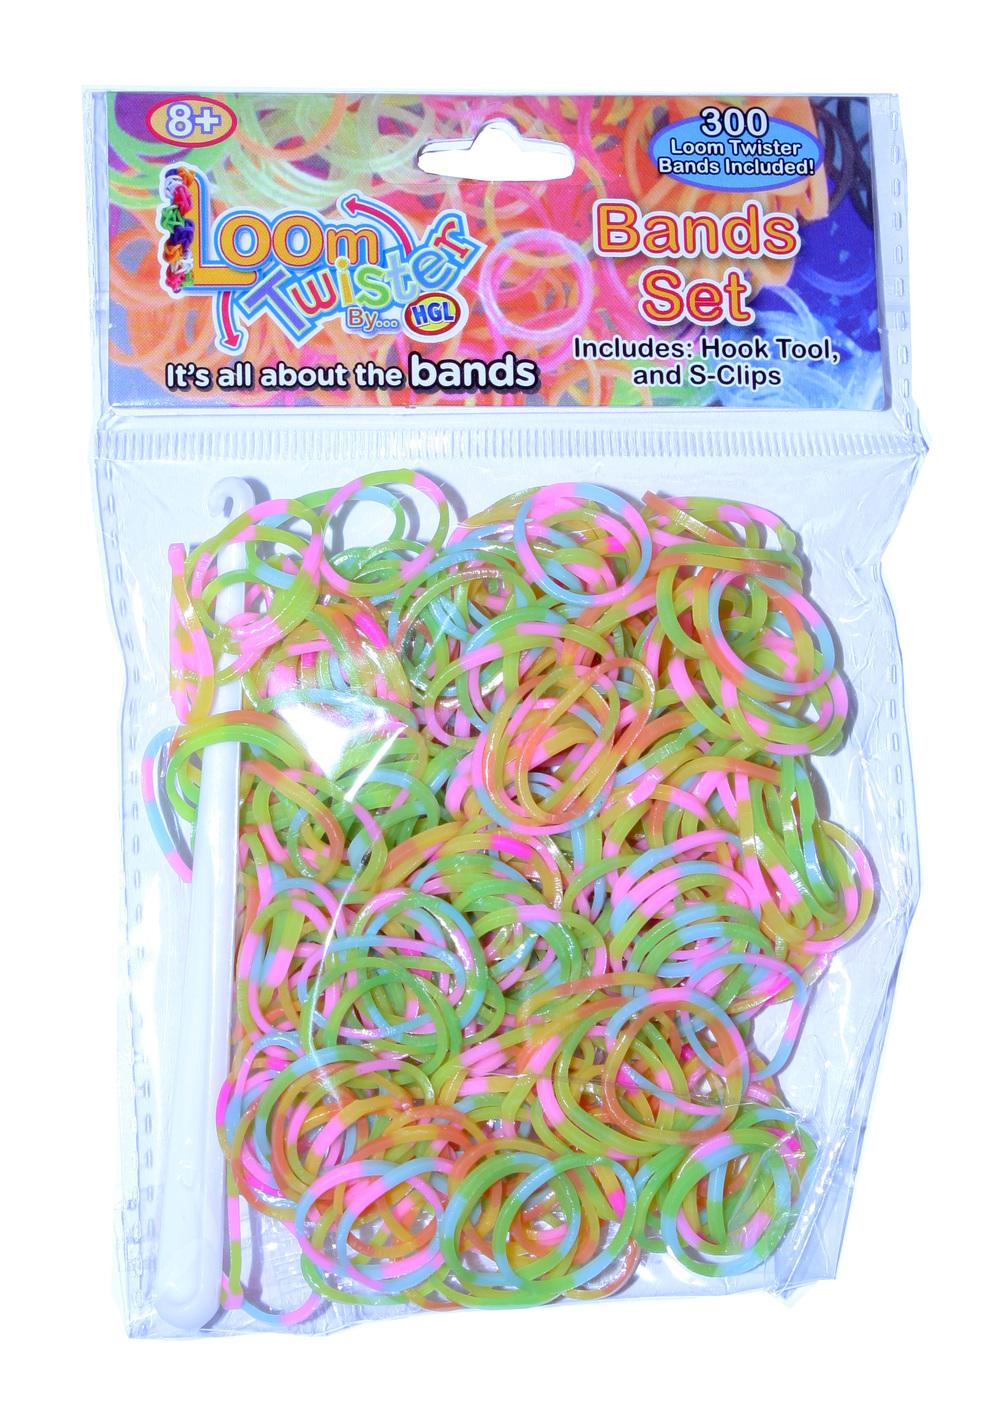 SV11652_LOOM_TWISTER_BANDS.jpg